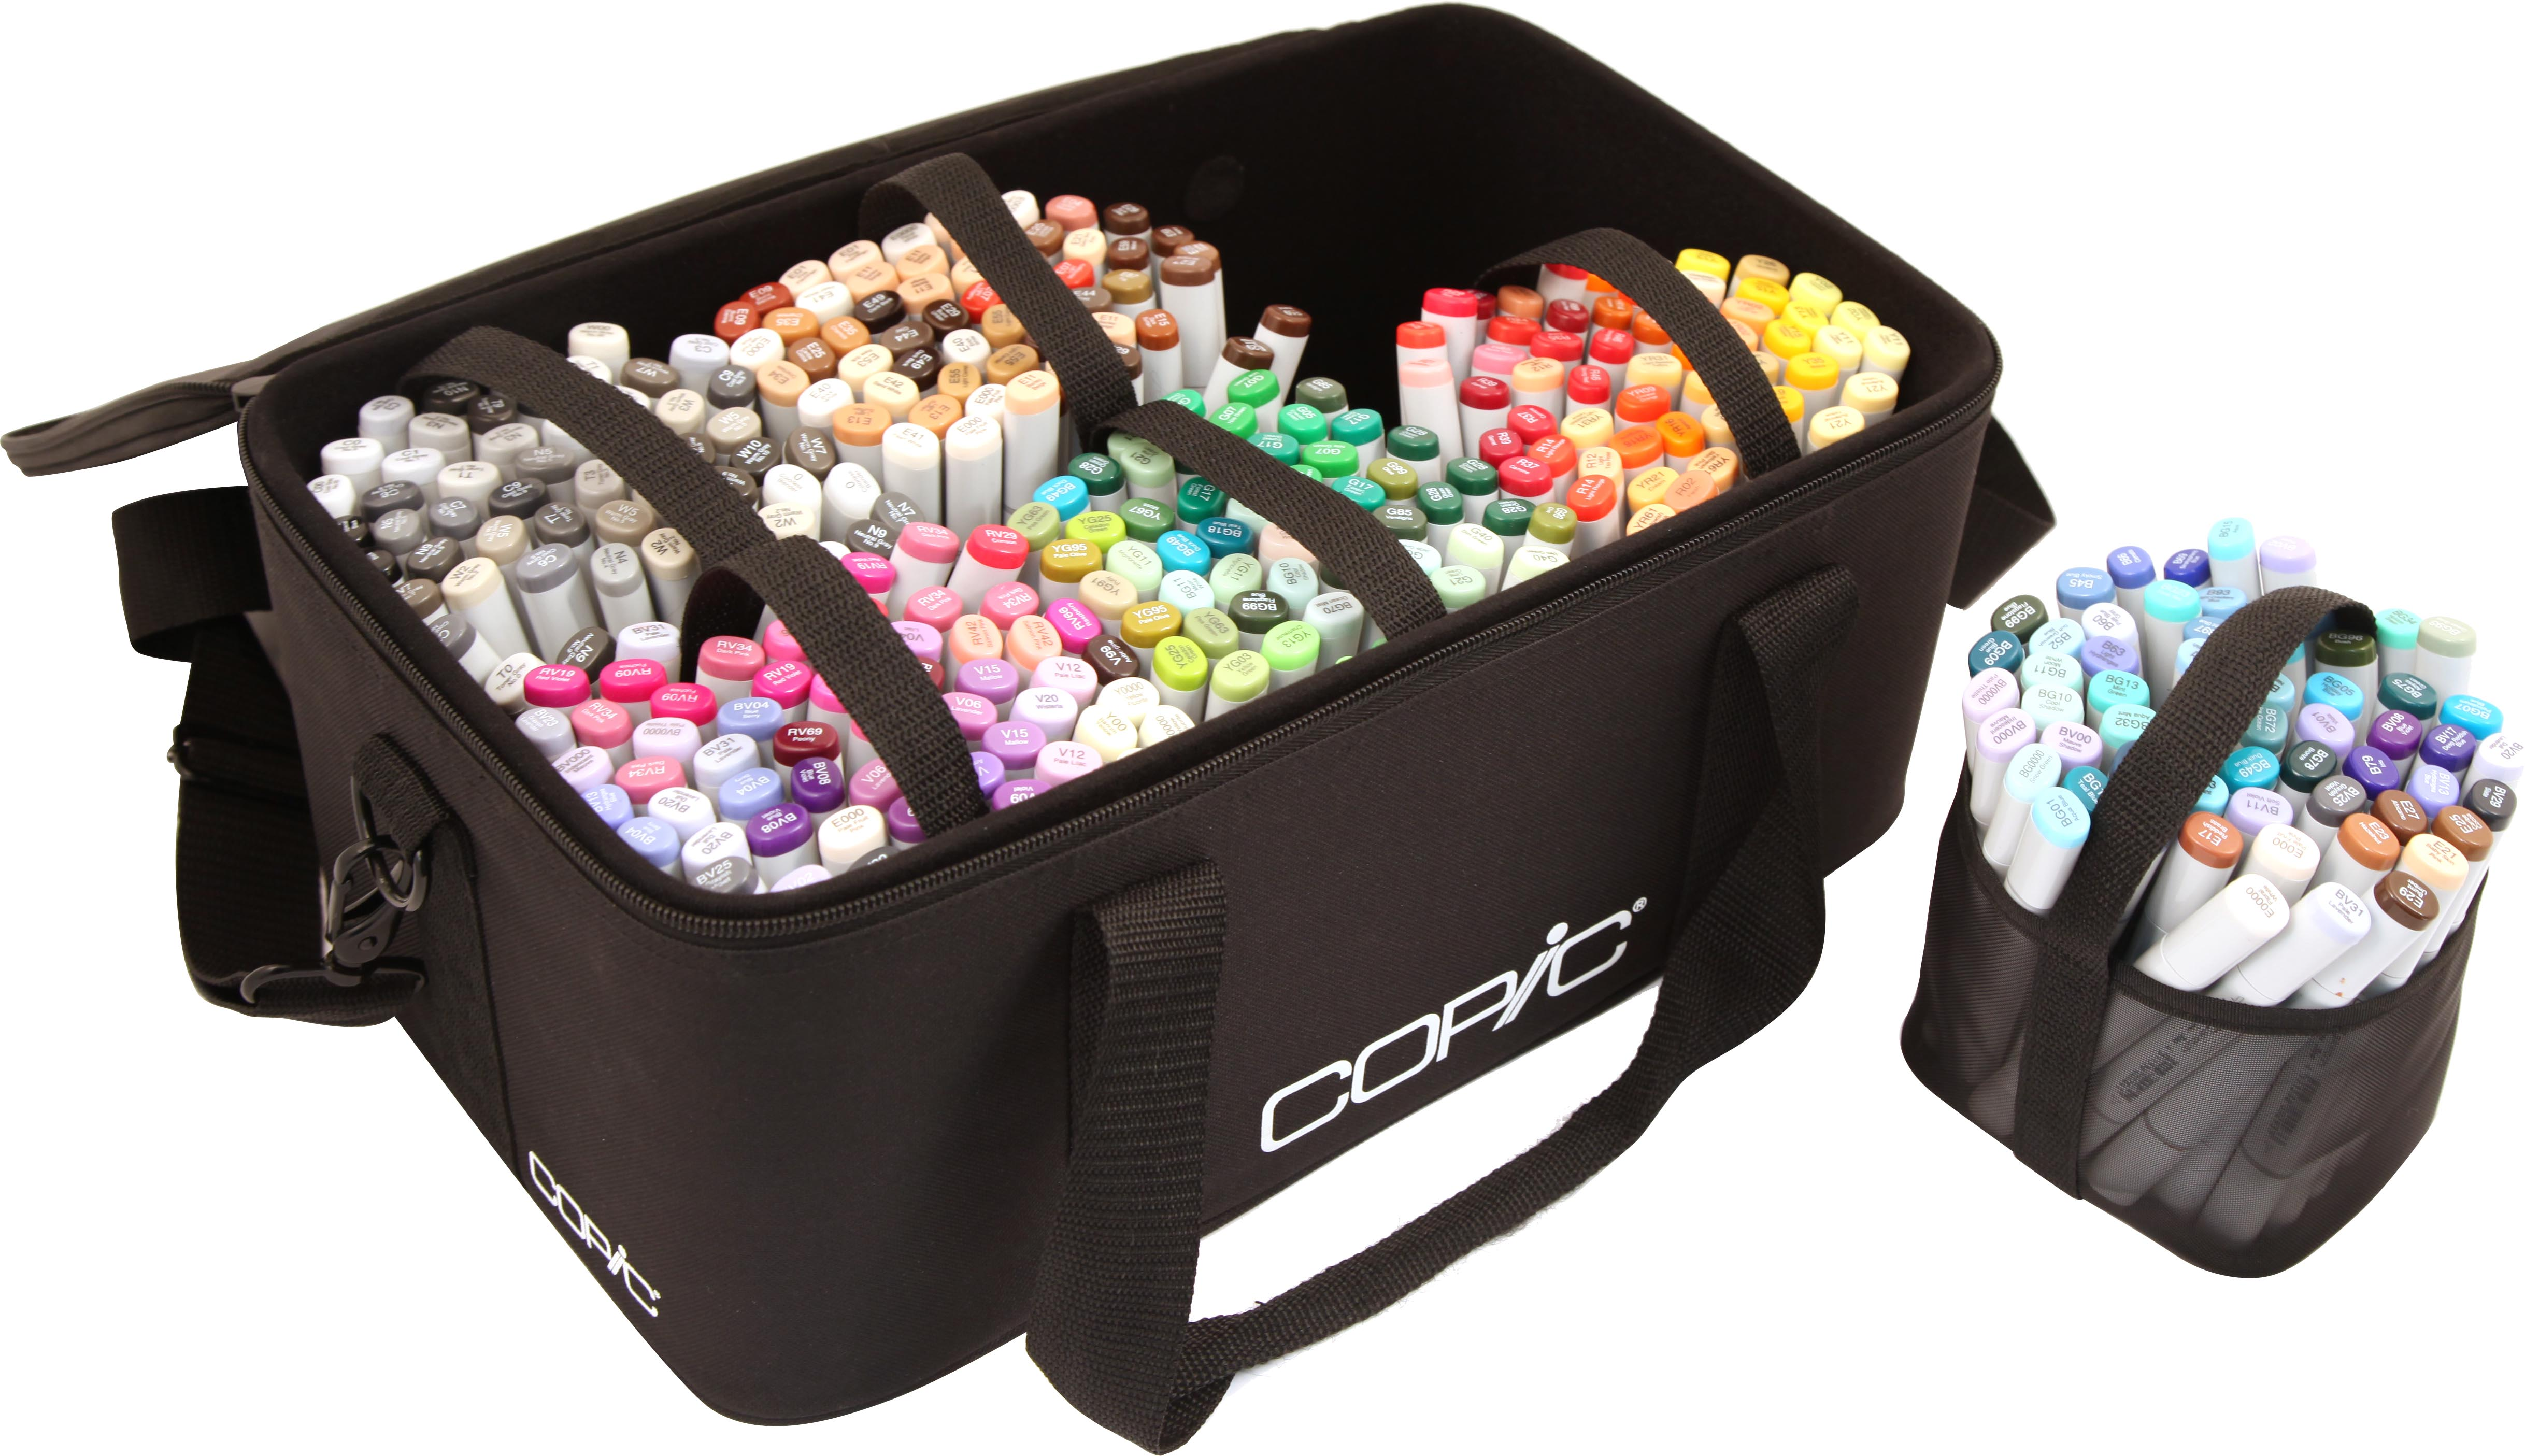 copic_carrying_case.jpg